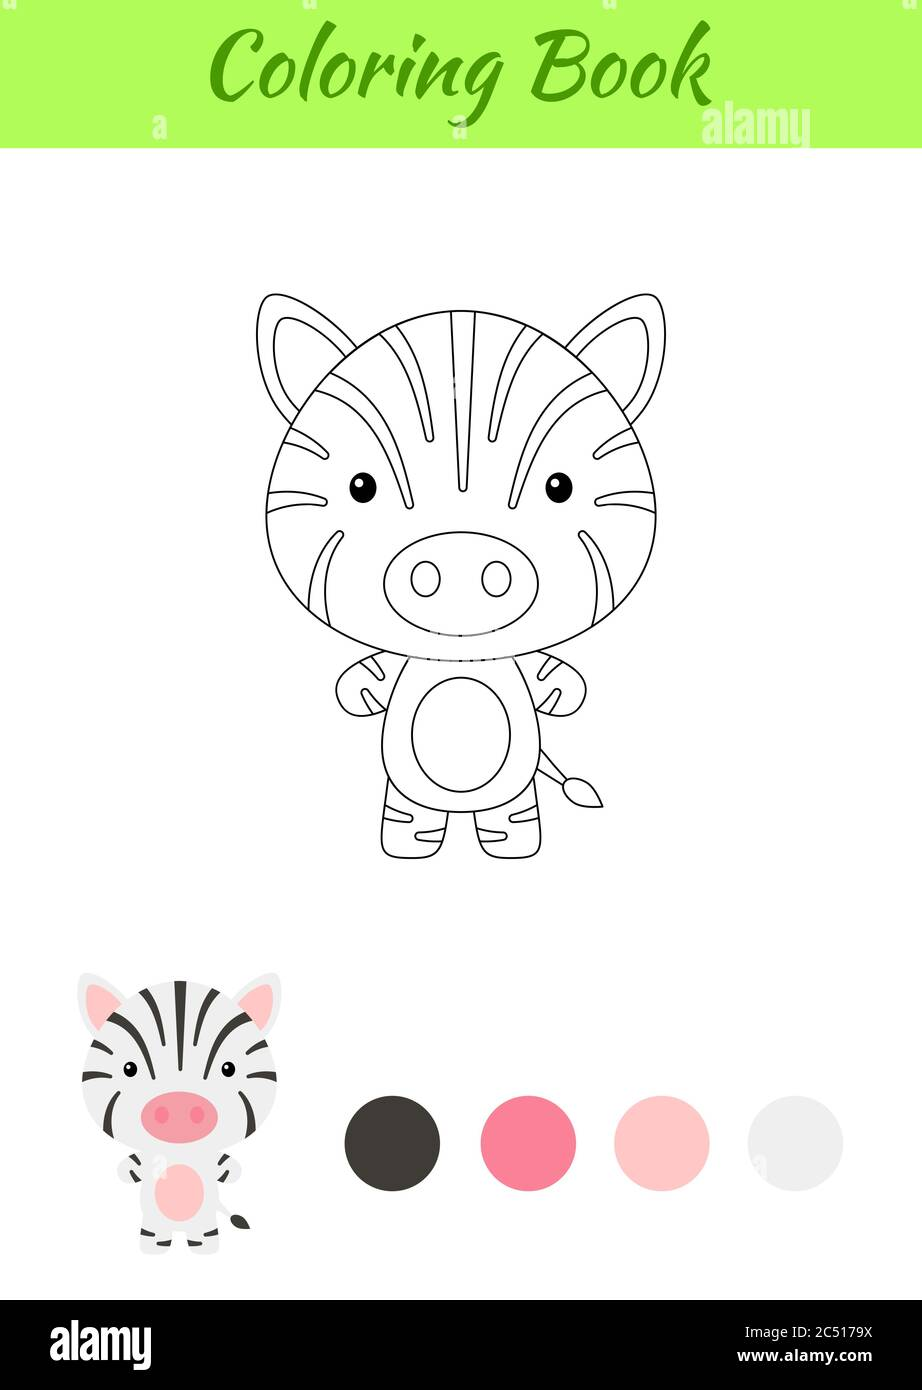 Coloring Page Happy Little Baby Zebra Coloring Book For Kids Educational Activity For Preschool Years Kids And Toddlers With Cute Animal Stock Vector Image Art Alamy